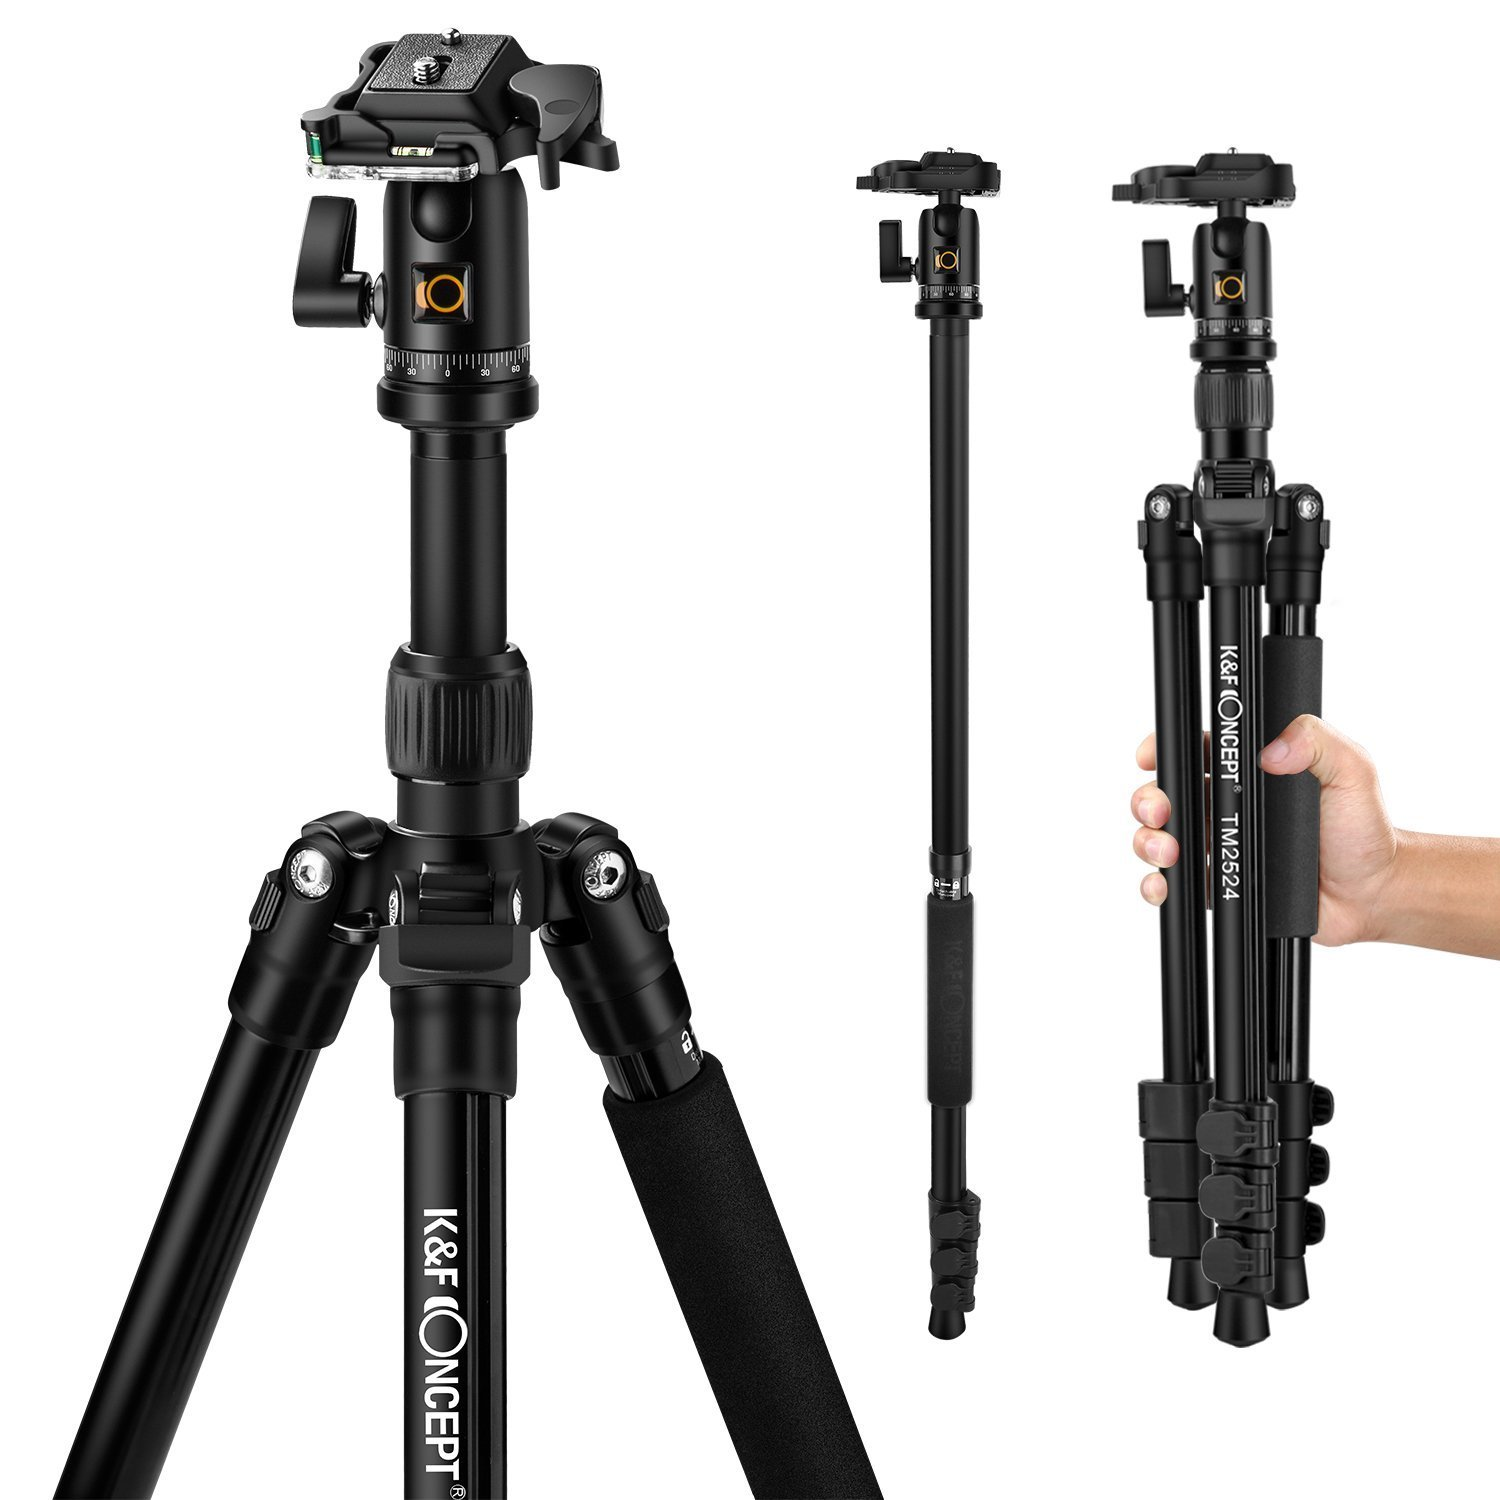 Carbon Fibre Tripod, K&F Concept Professional Portable Camera Tripod Monopod Lightweight Travel Tripod Stand 57.48' with 360° Ball Head,Carring Bag for Canon Nikon Sony DSLR Camera,Load Capacity 26.46lbs Black Shenzhen Zhuoer Photograph CAKF09.033